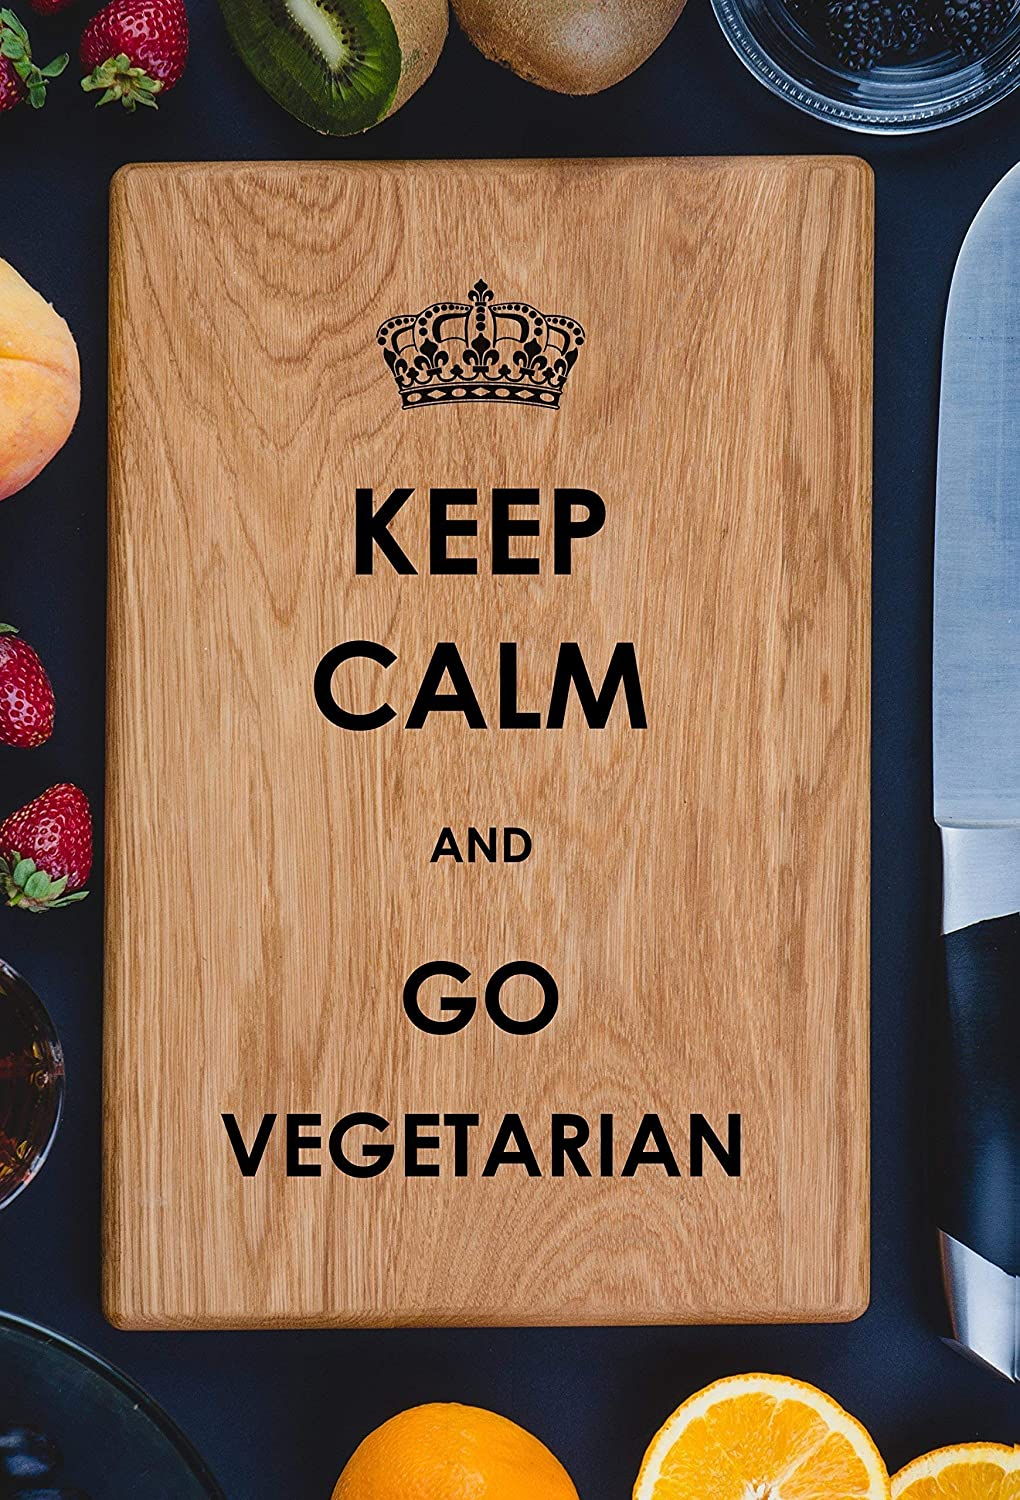 I Love Veg Vegetarian Vegan Healthylife Vegetables Yoga Personalized Engraved Cutting Board